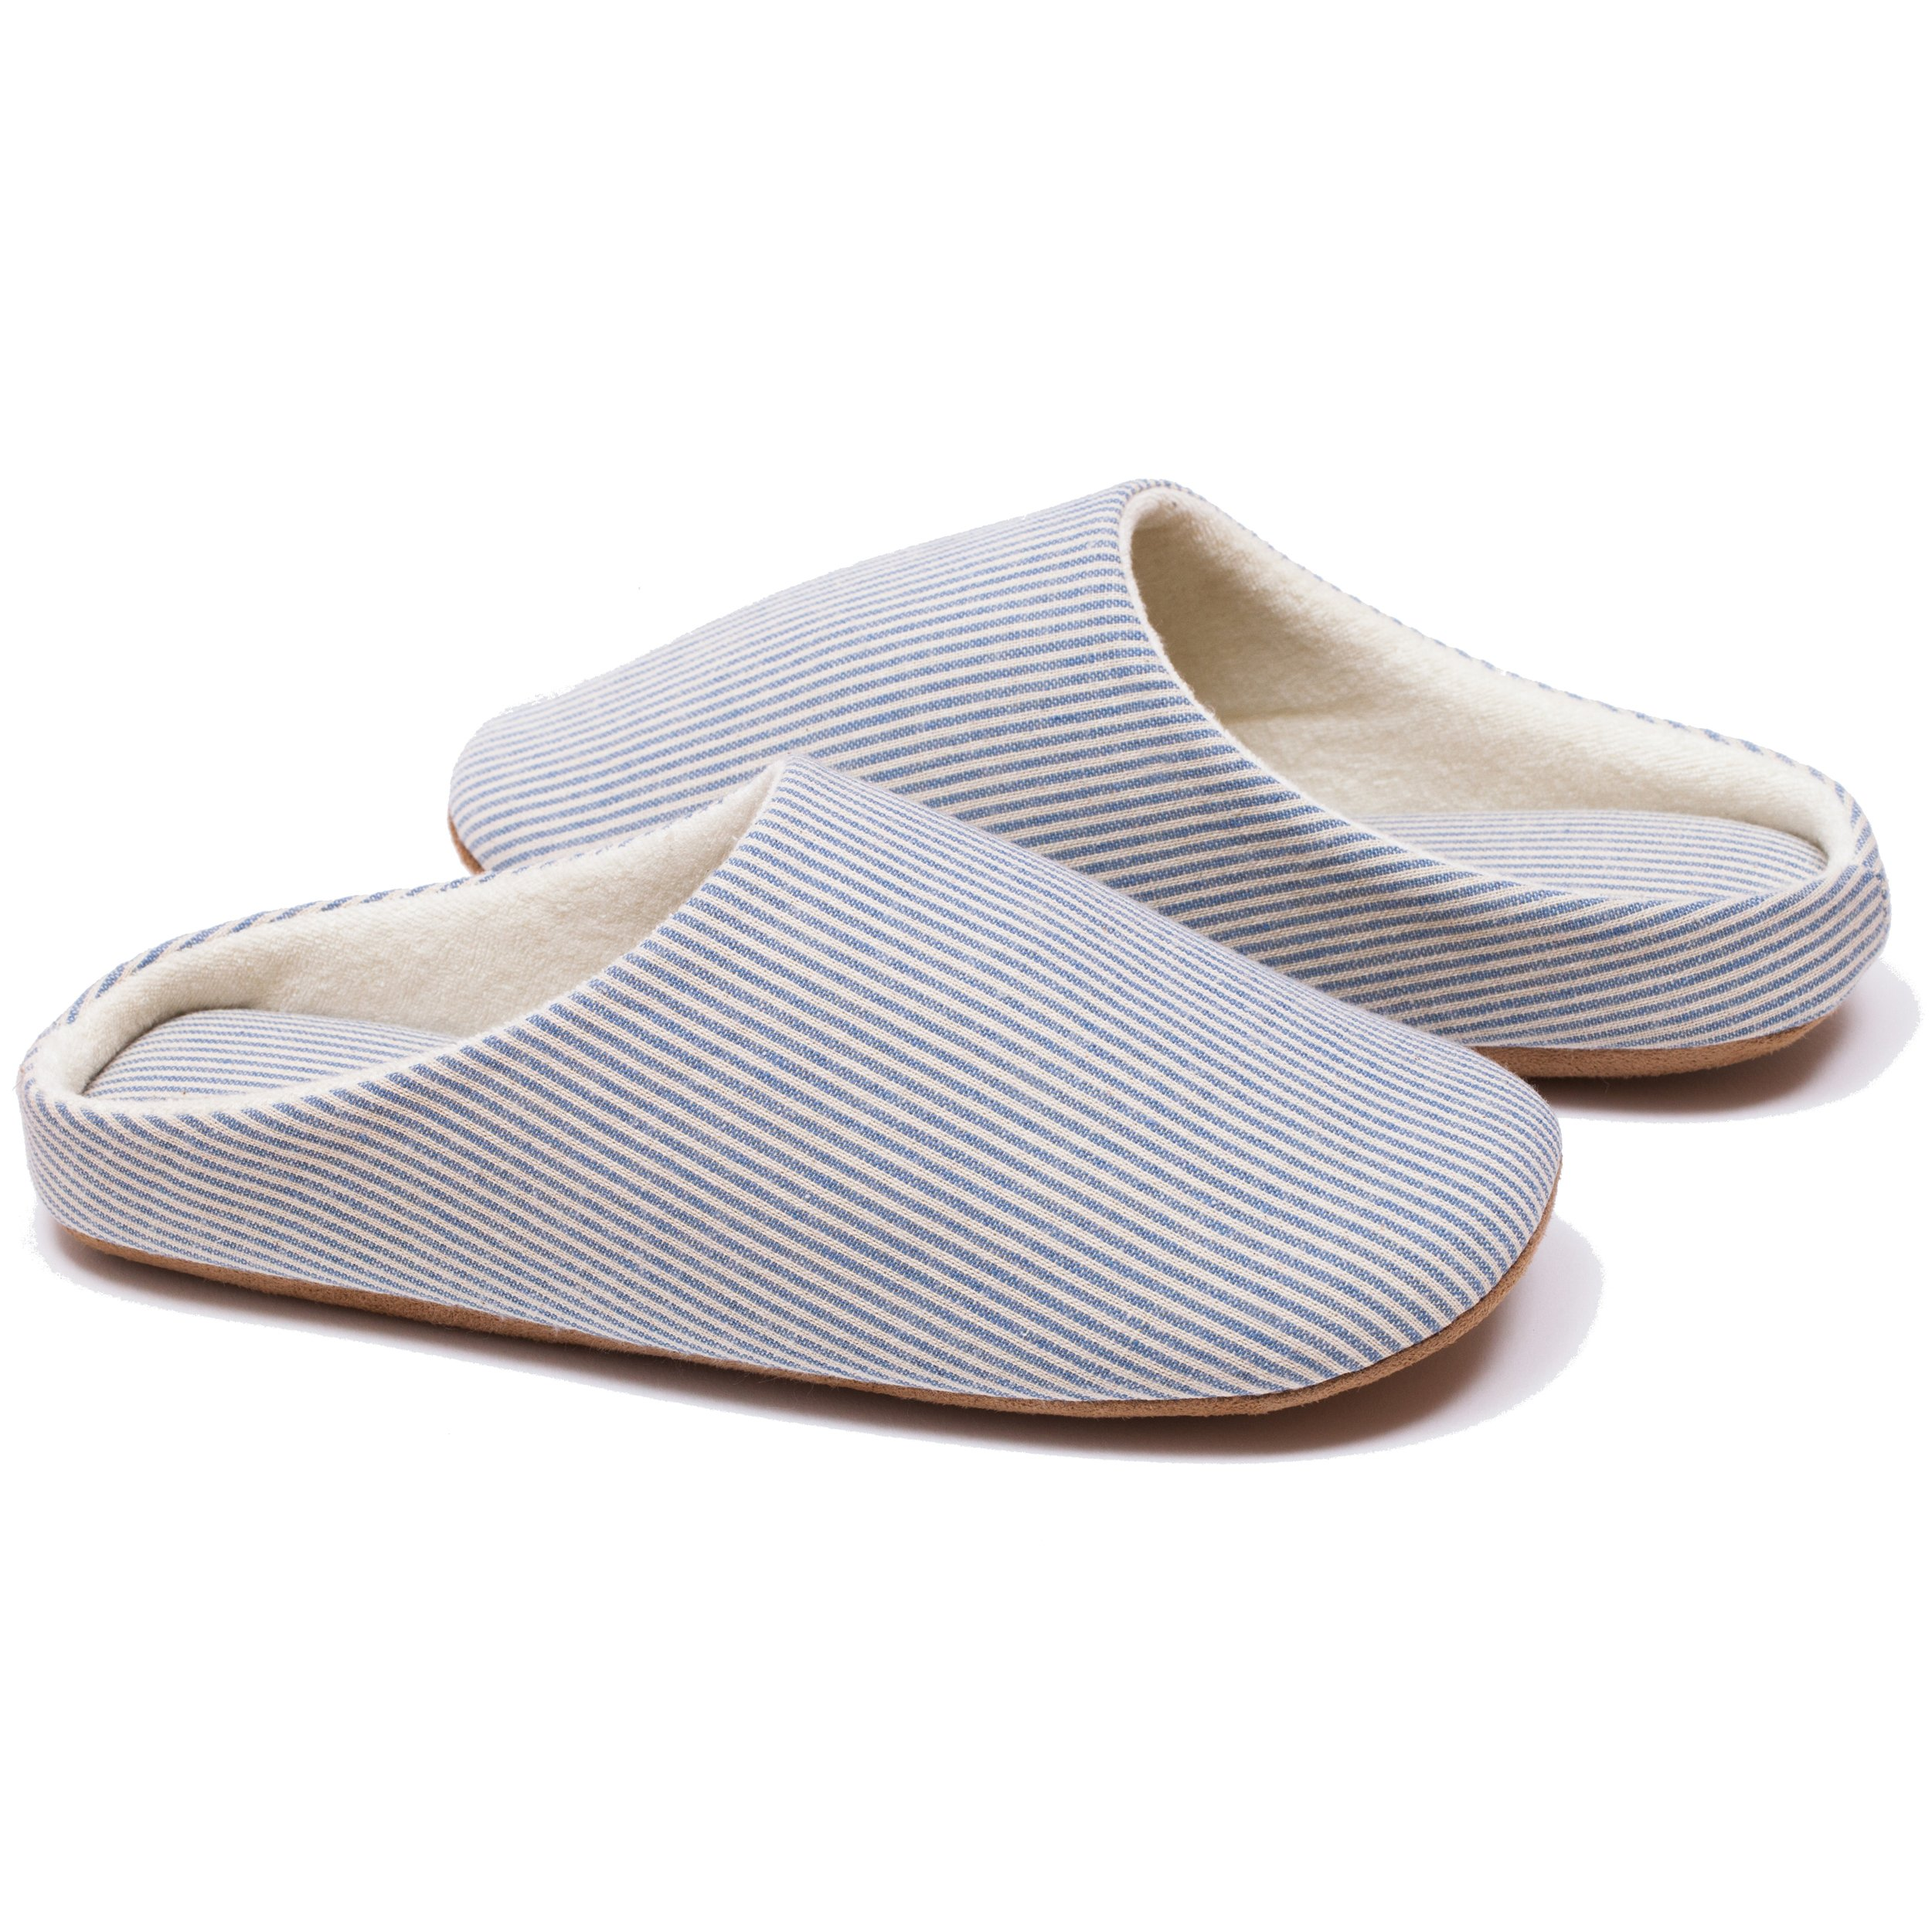 RelaxedFoot Slippers | Organic Cotton & Memory Foam | 1 Pair with Storage Bag (Medium, Blue)